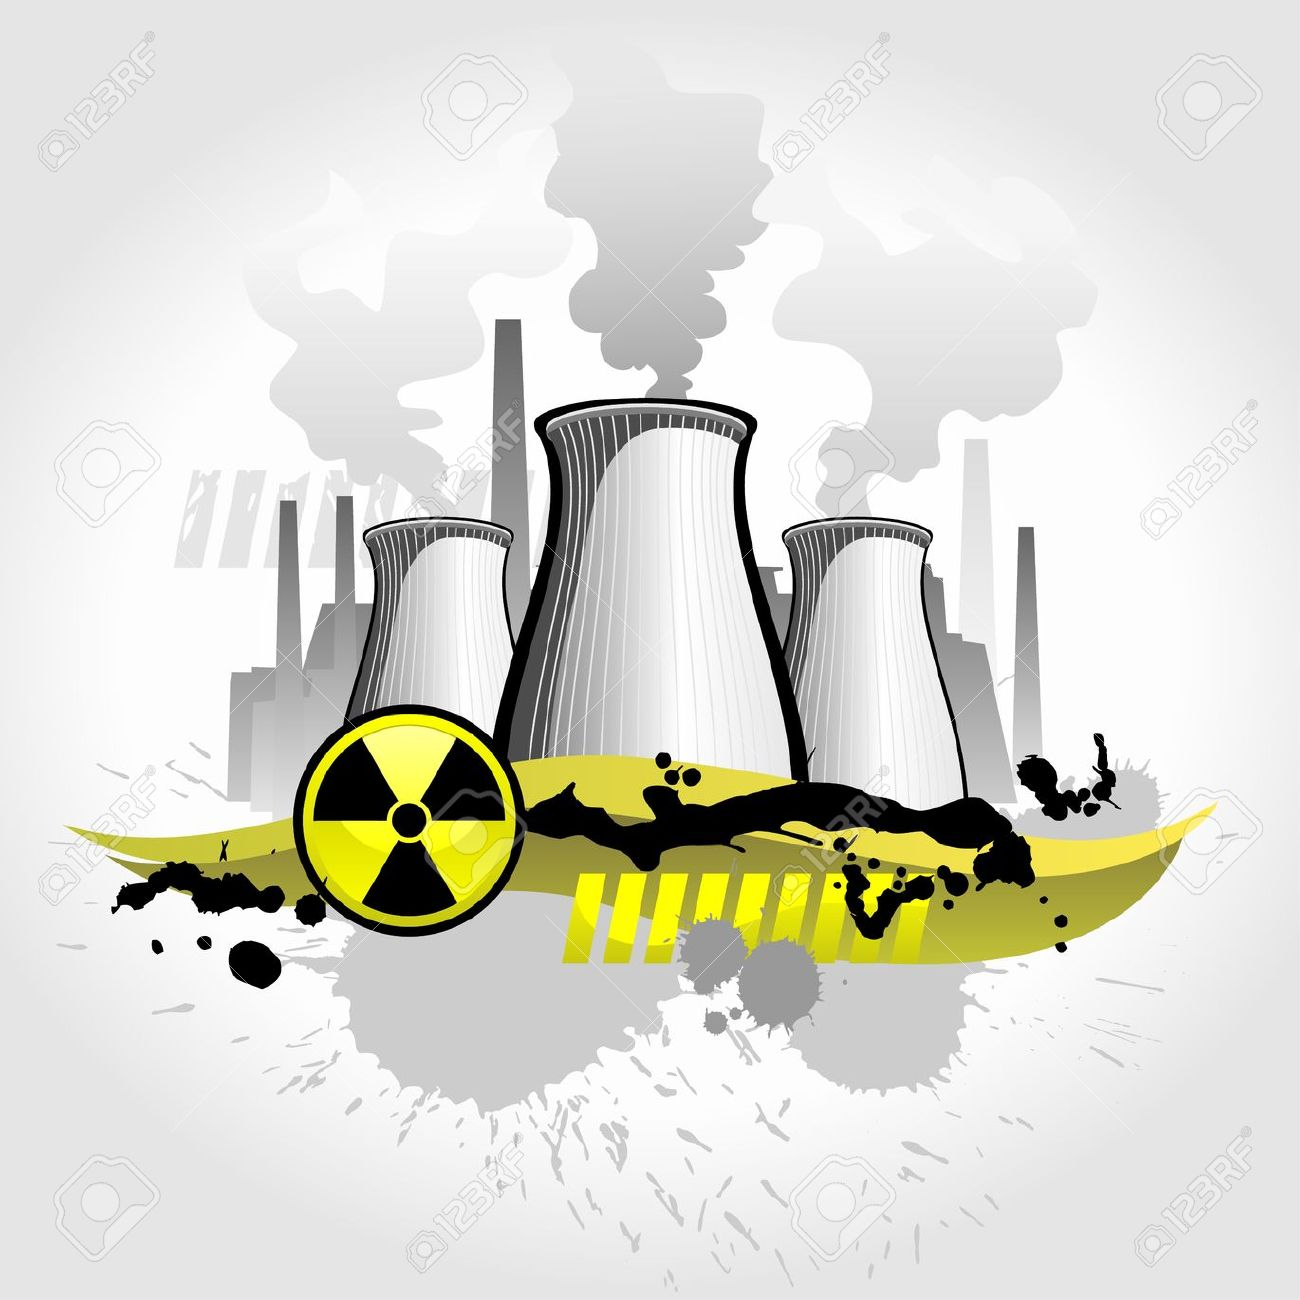 Nuclear Plant Abstract Background Royalty Free Cliparts, Vectors.